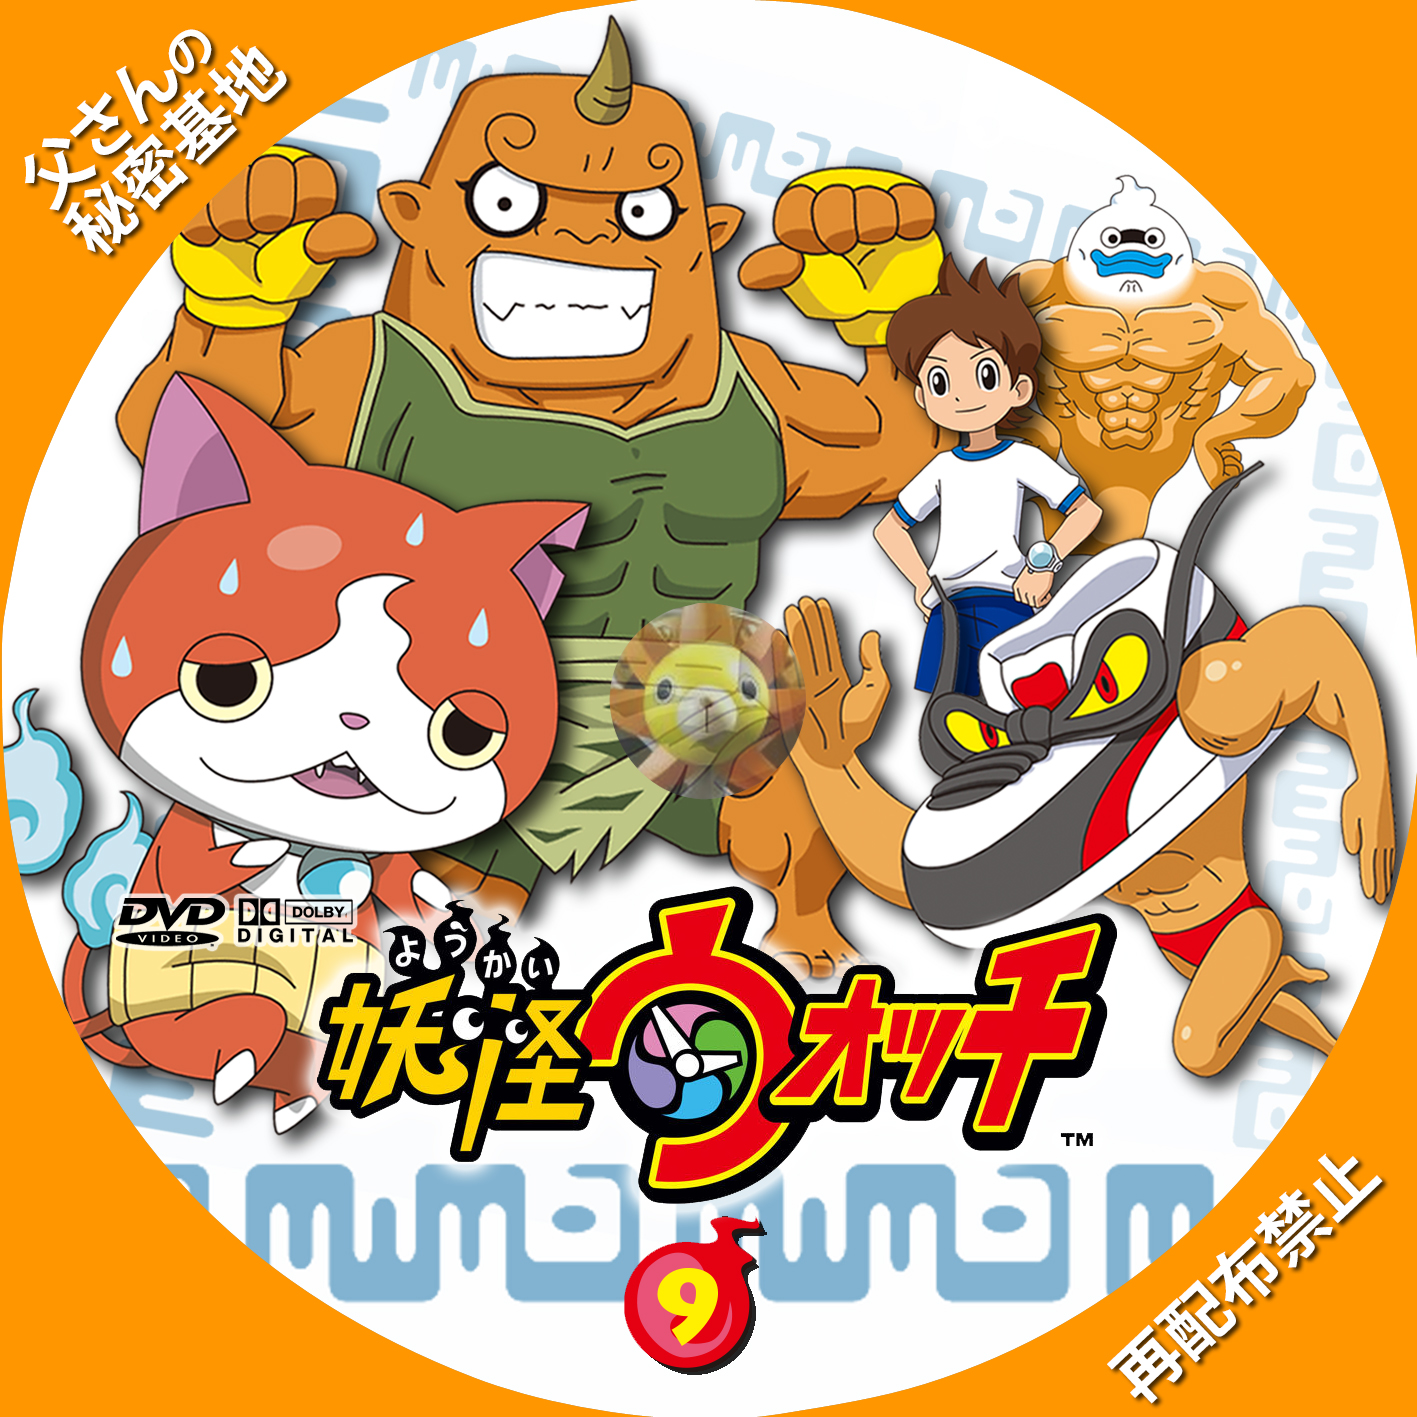 youkai-watch_09DVDb.jpg